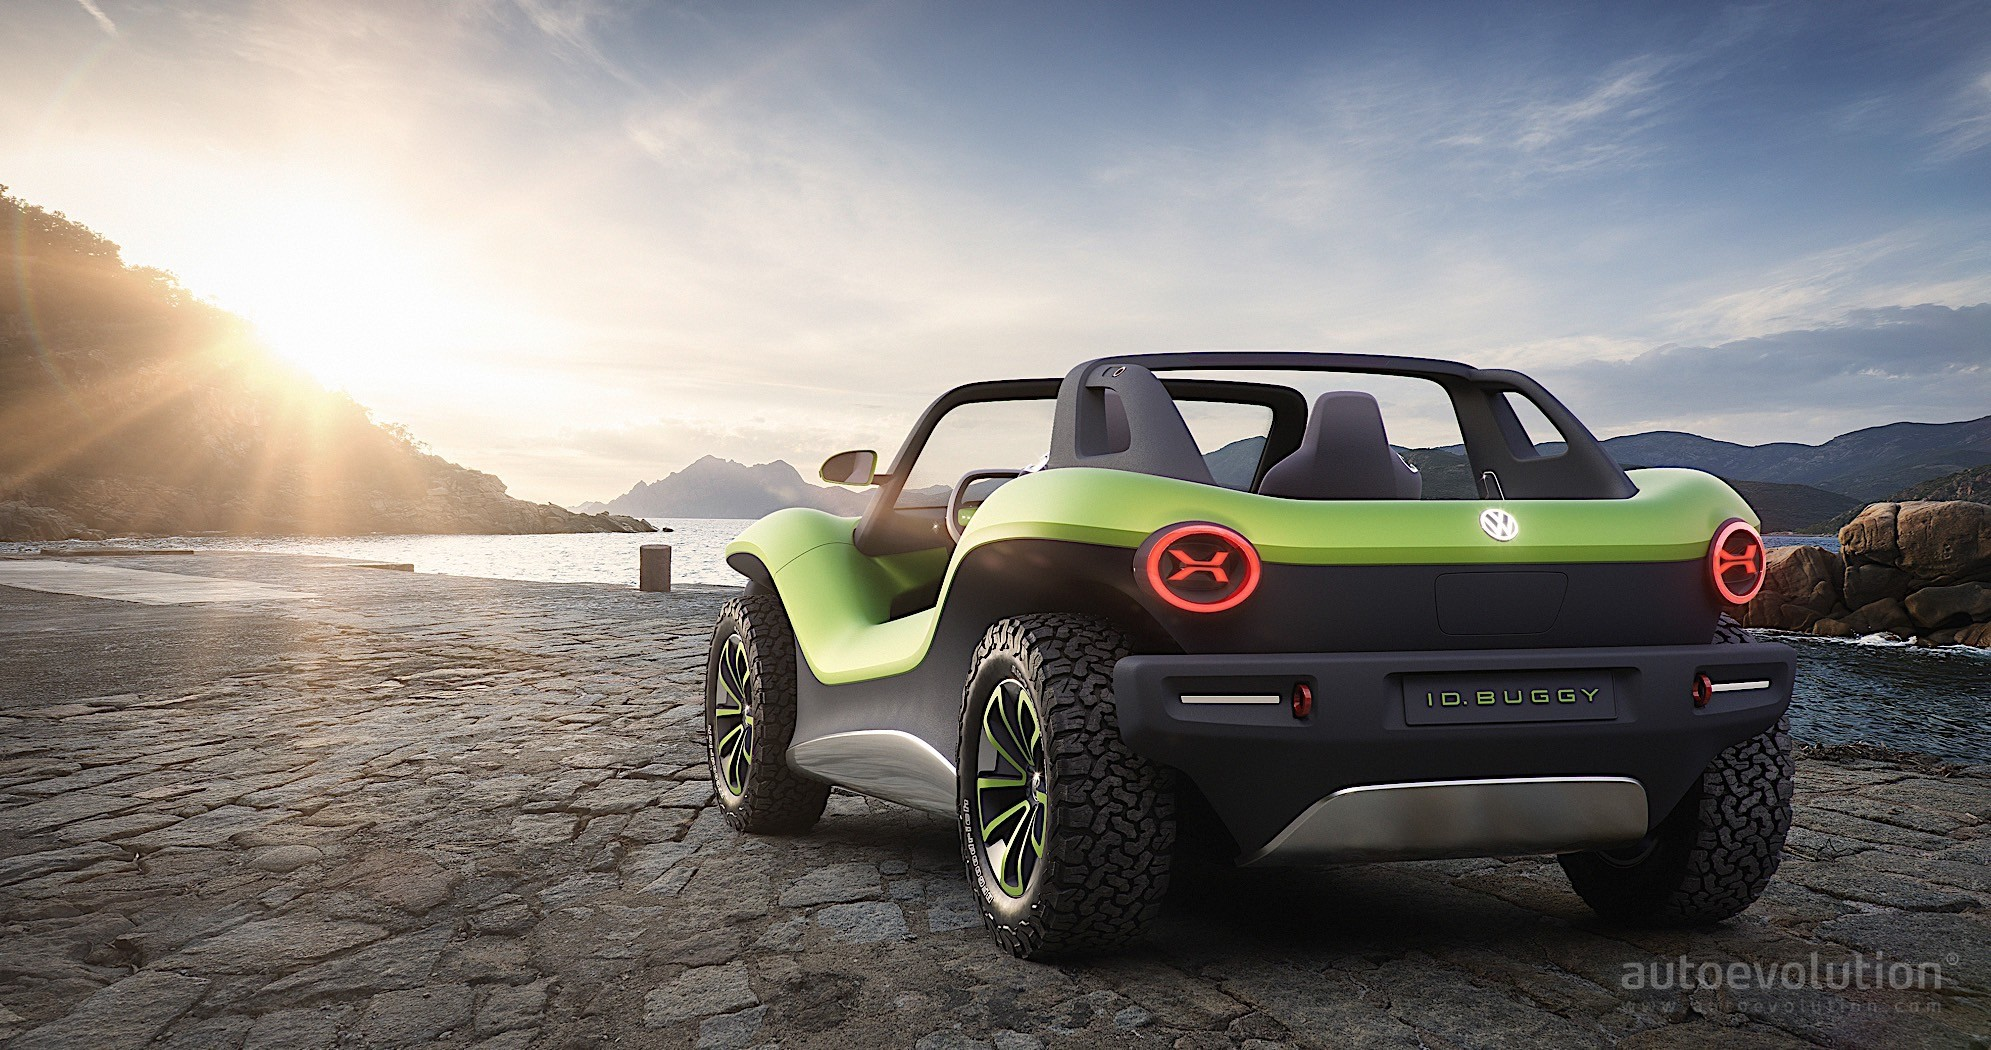 Volkswagen ID Buggy Is a Speck of Green Beach Fun in Geneva - autoevolution